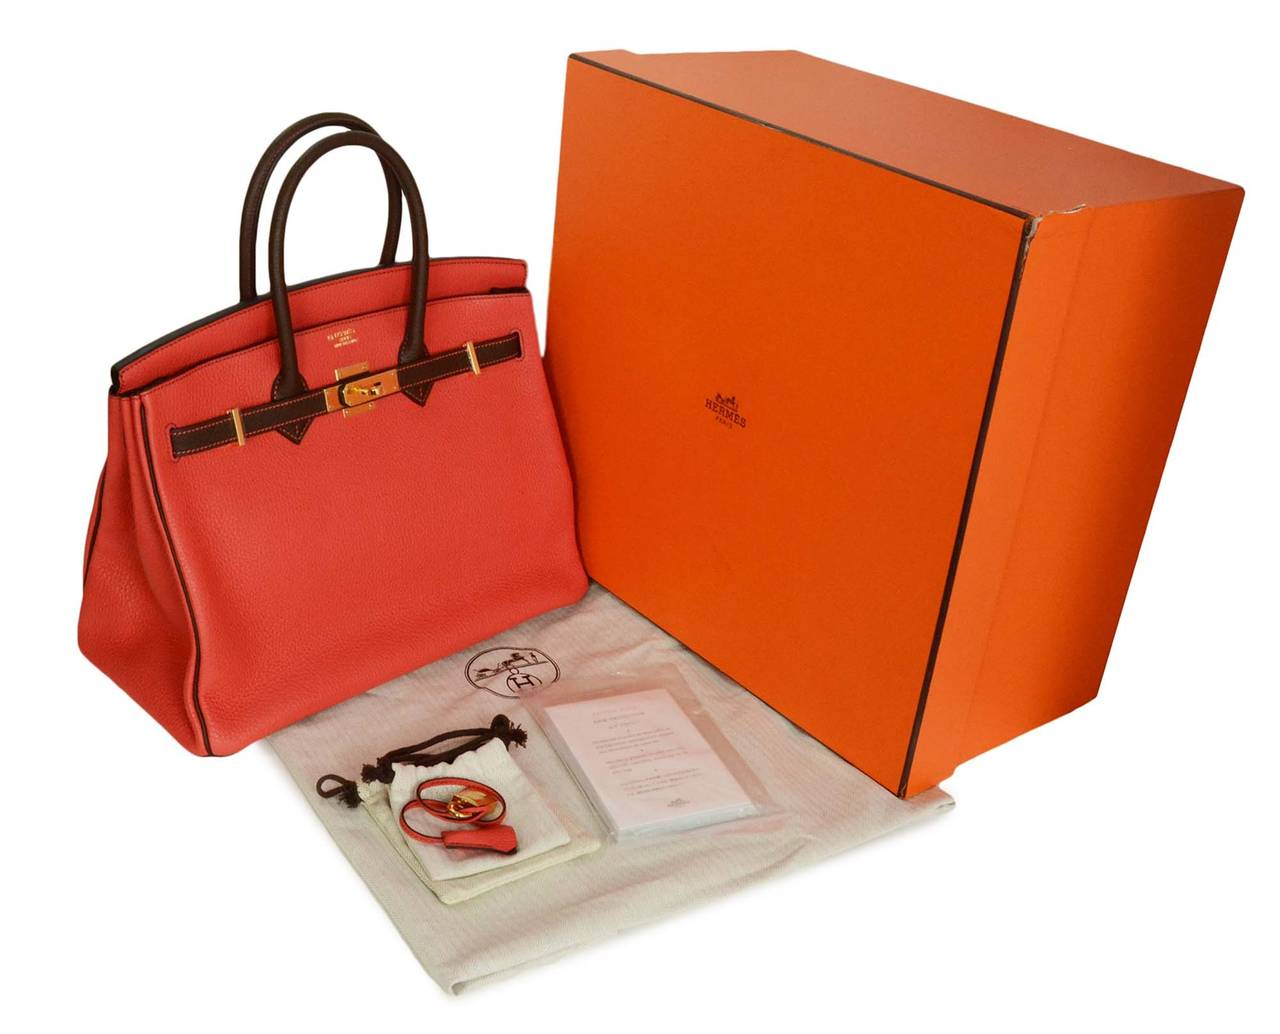 HERMES '15 SO Rouge Pivione/Cacao Red & Brown Togo Leather 35 cm Birkin Bag GHW 9